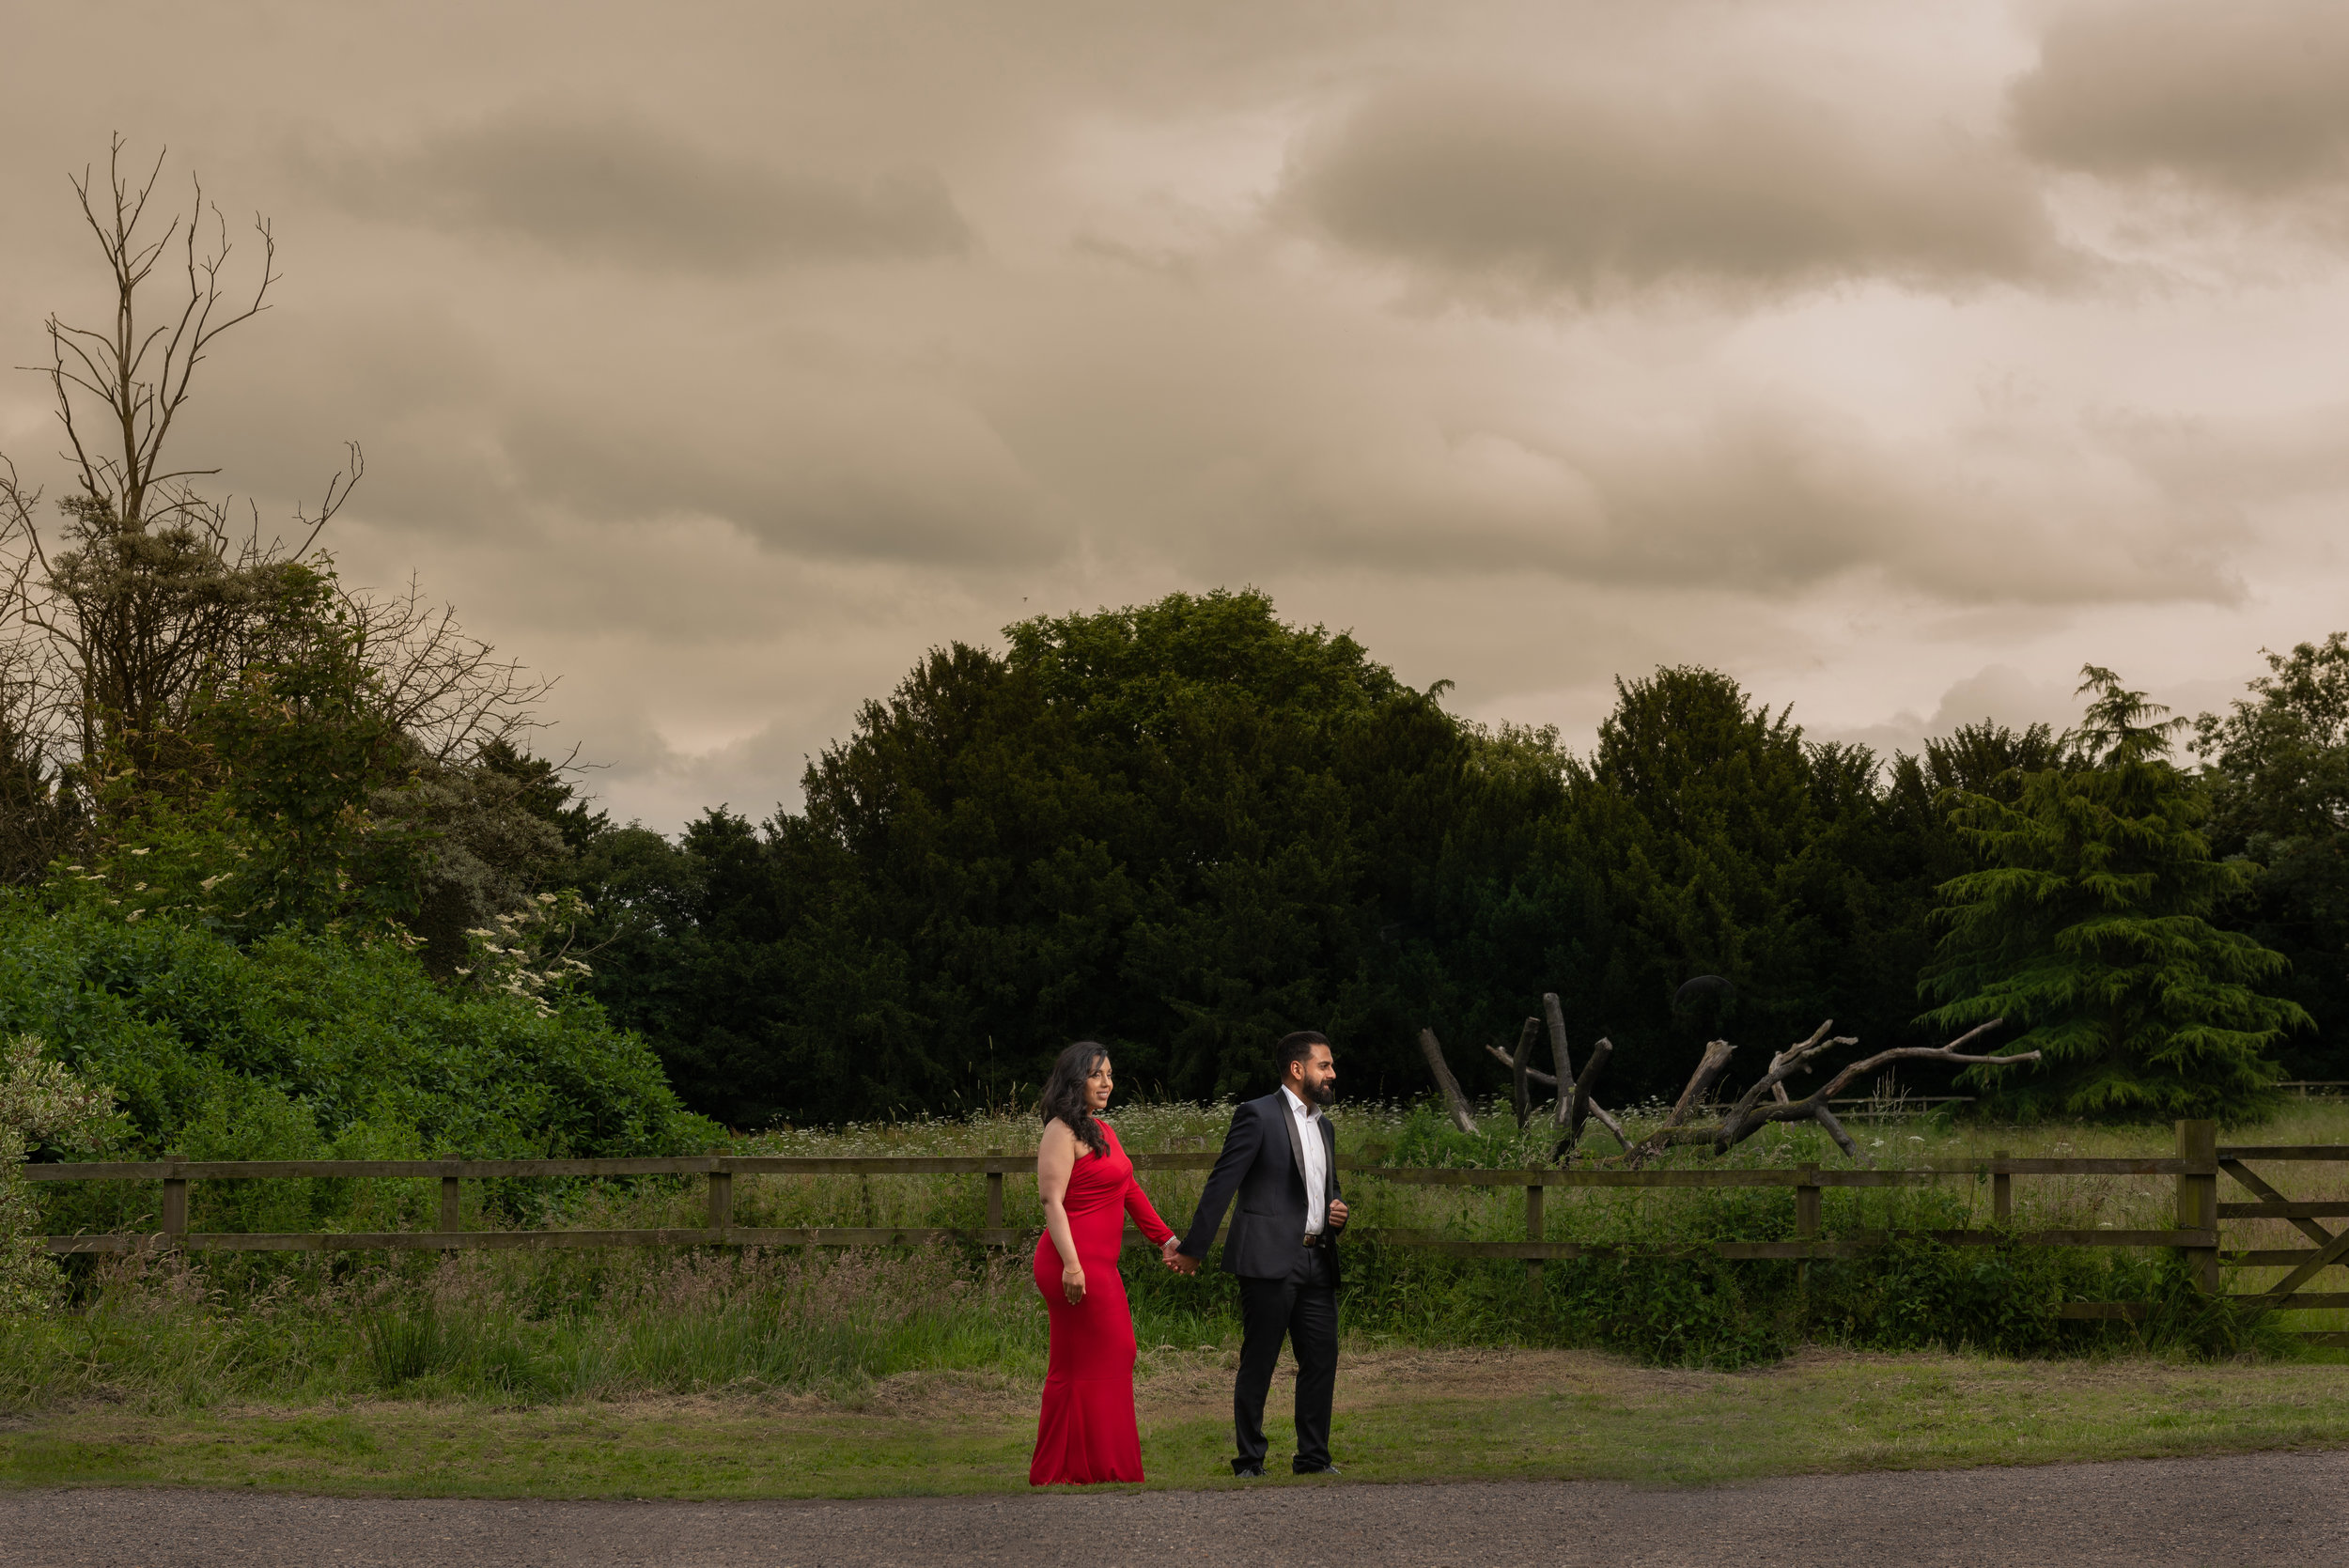 Pre-Wedding shoot in Leicester - Photos by Abhi